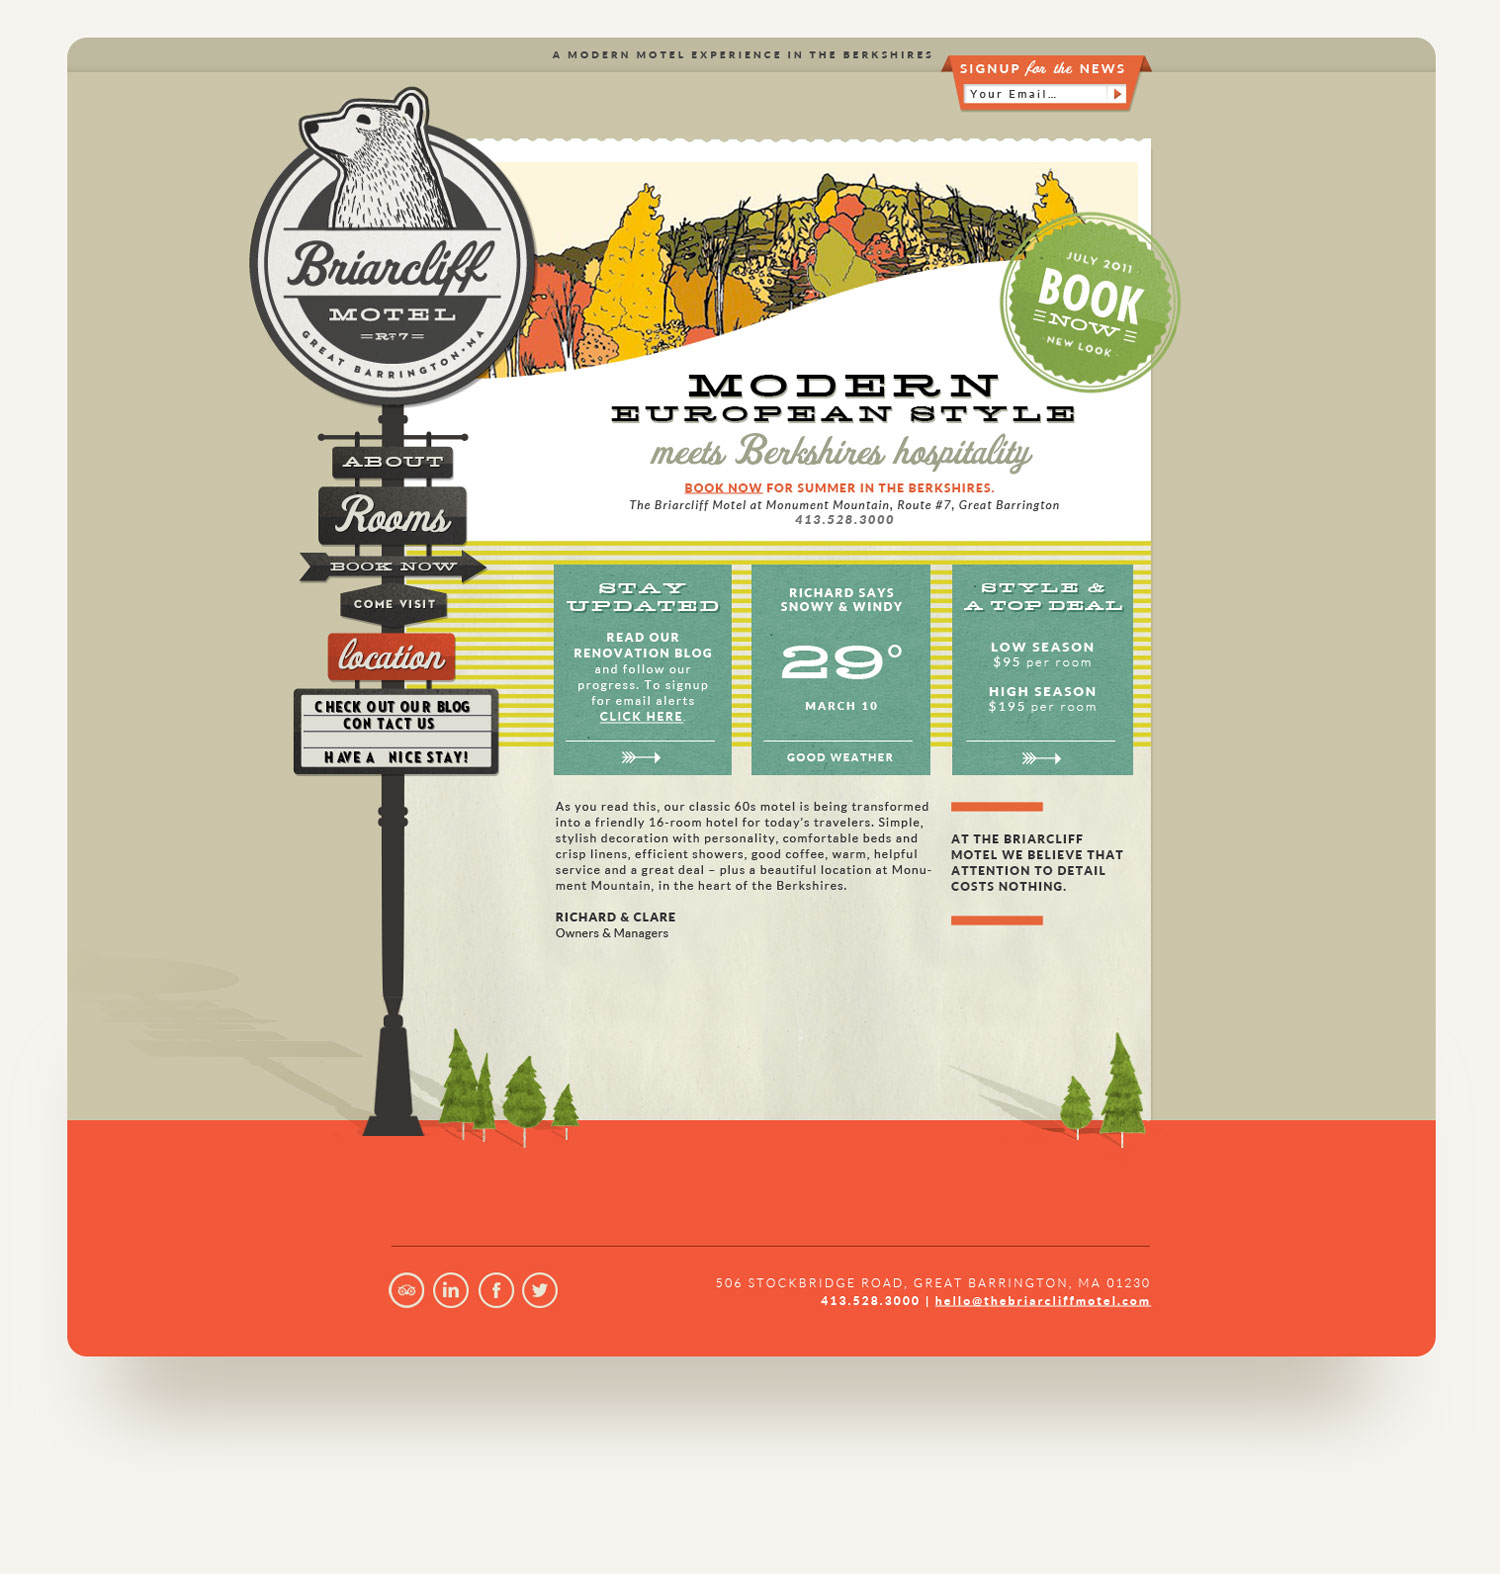 Quirky retro website with motel signage illustration navigation for the Briarcliff in the Berkshires. Web design by Brittany Hurdle beckon webeckon